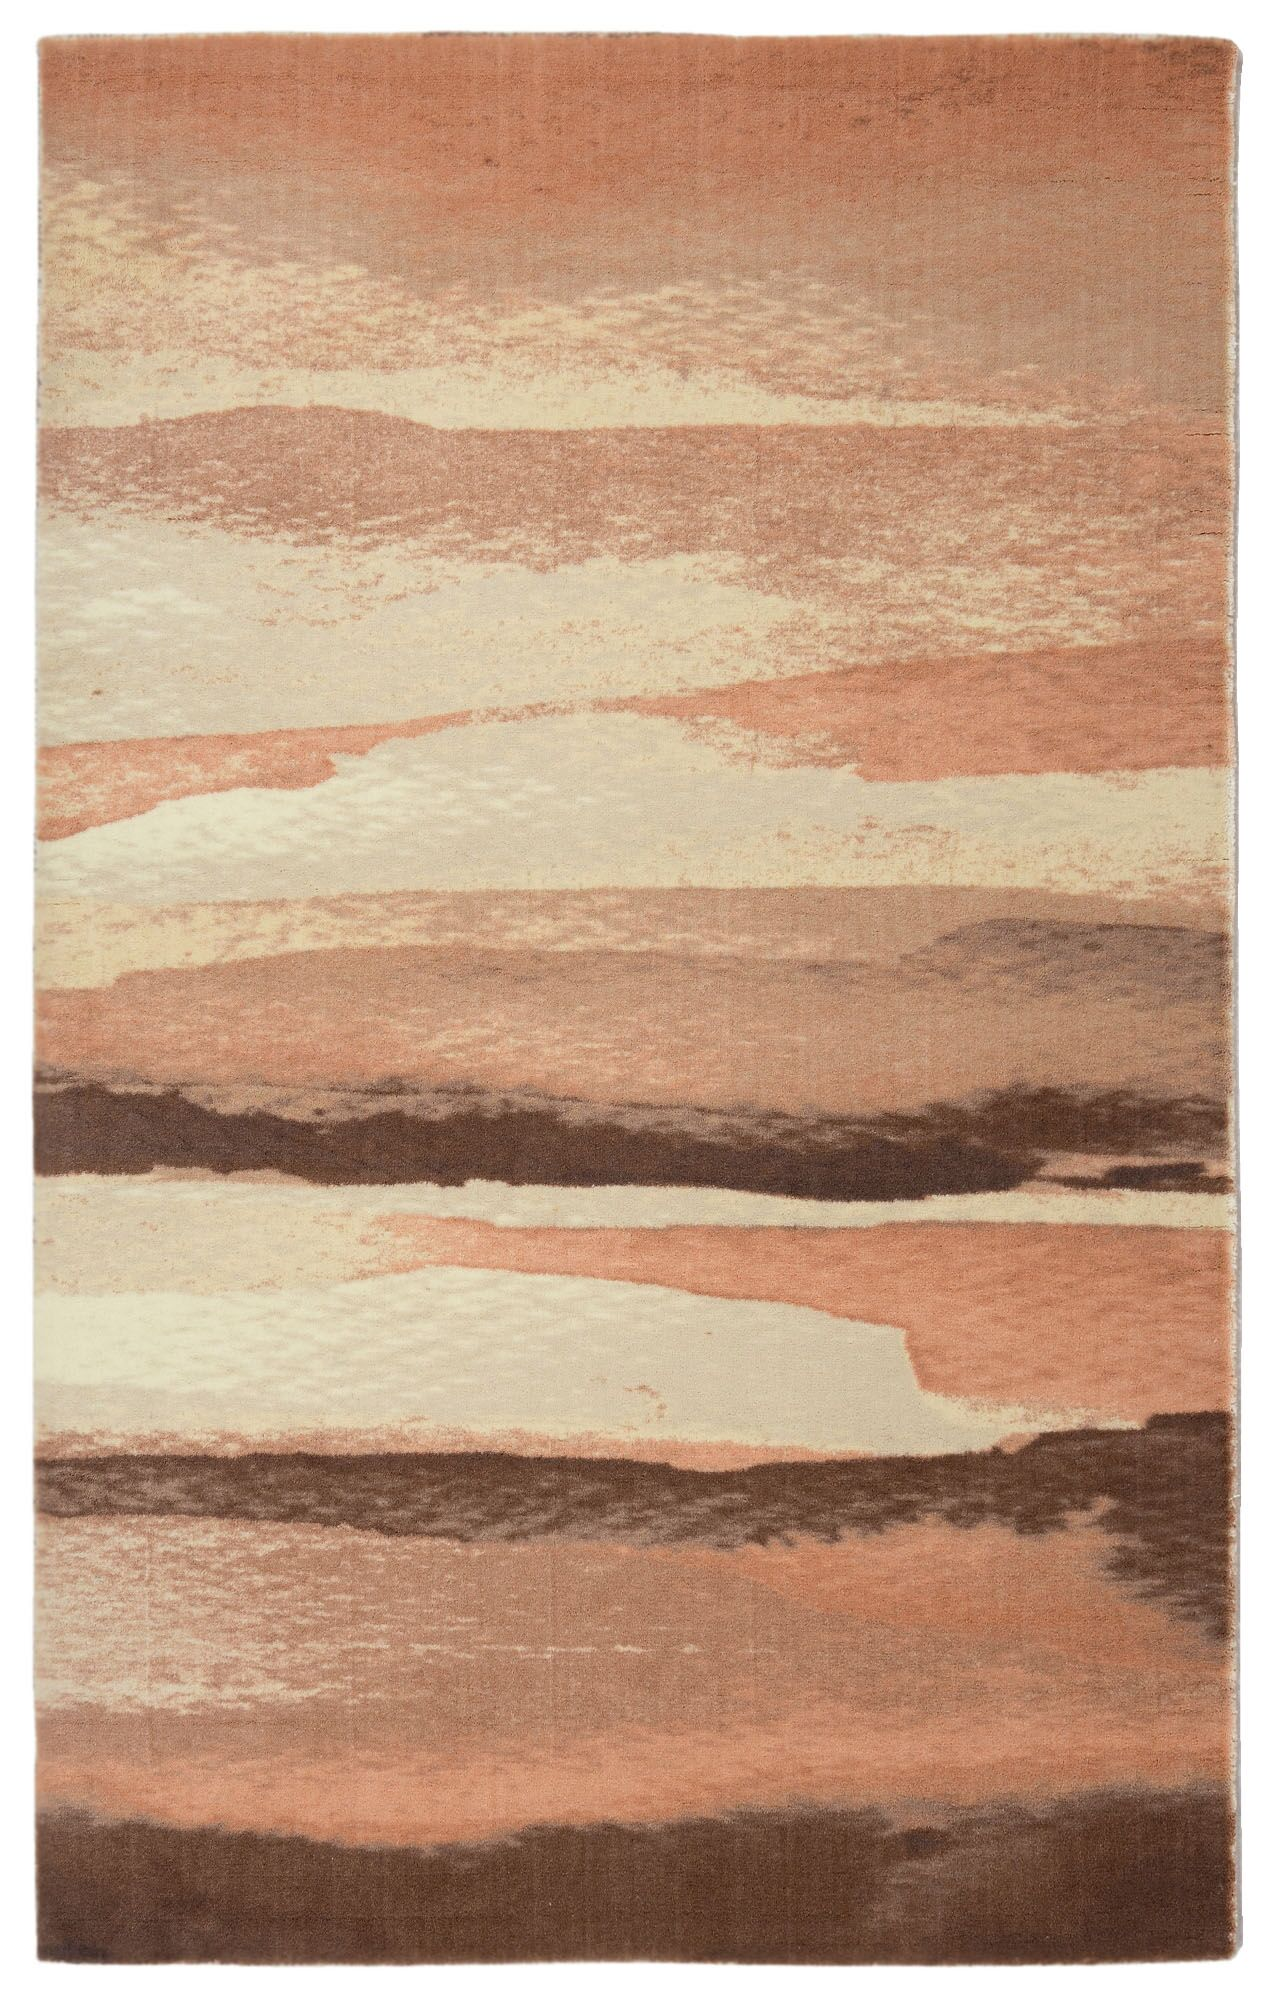 Labombard Contemporary Modern Beige/Peach Area Rug Rug Size: Rectangle 7'6